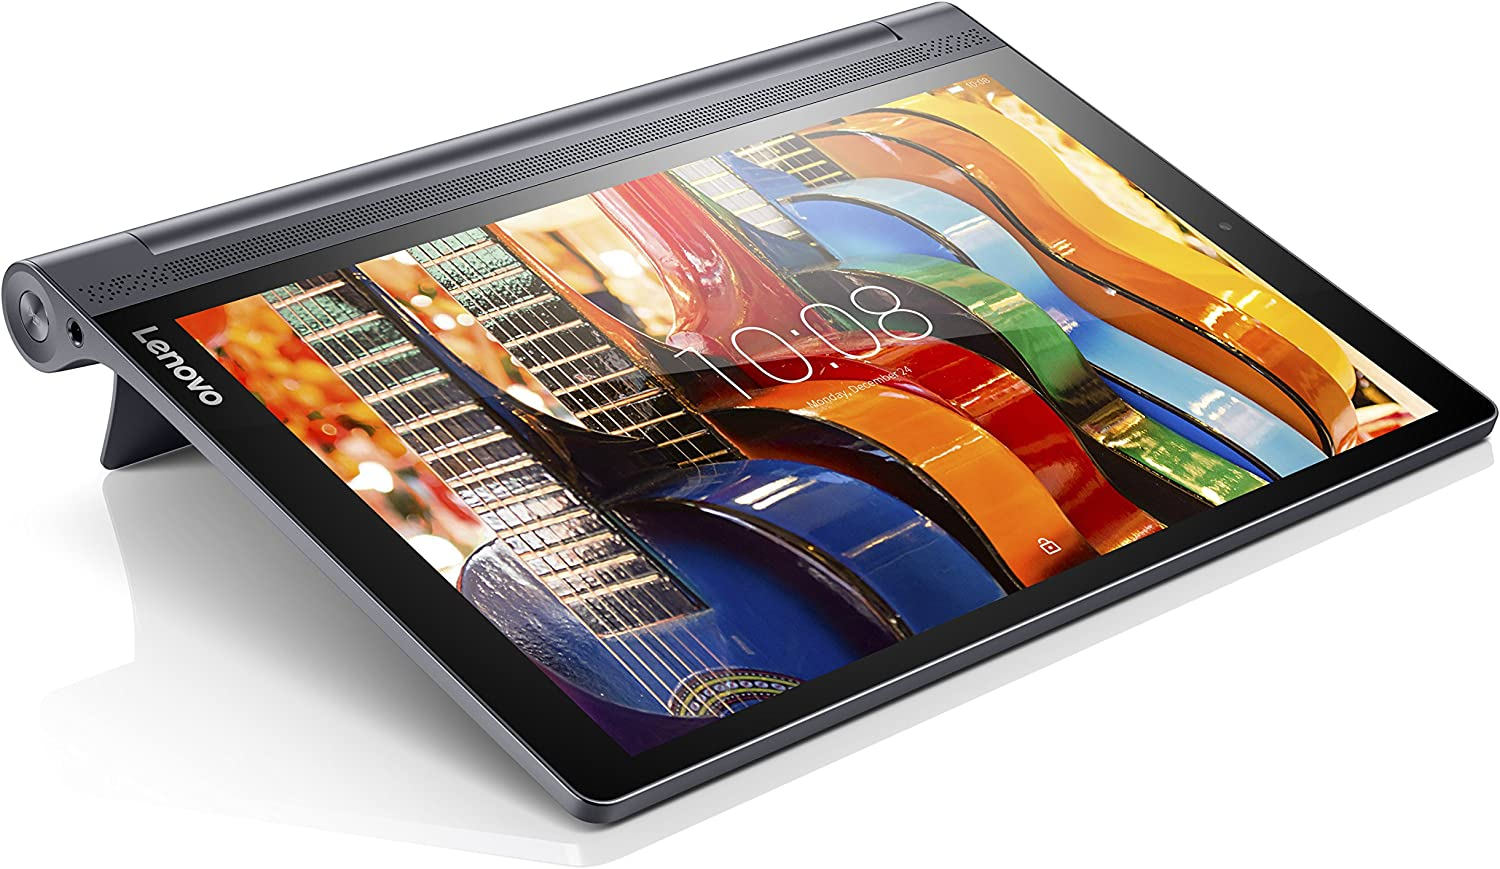 "Lenovo Yoga Tab 3 Pro - 10.1"" WQHD Tablet (Intel Atom, 2 GB SDRAM, 32 GB SSD, Android 5.1 Lollipop) ZA0F0050US"